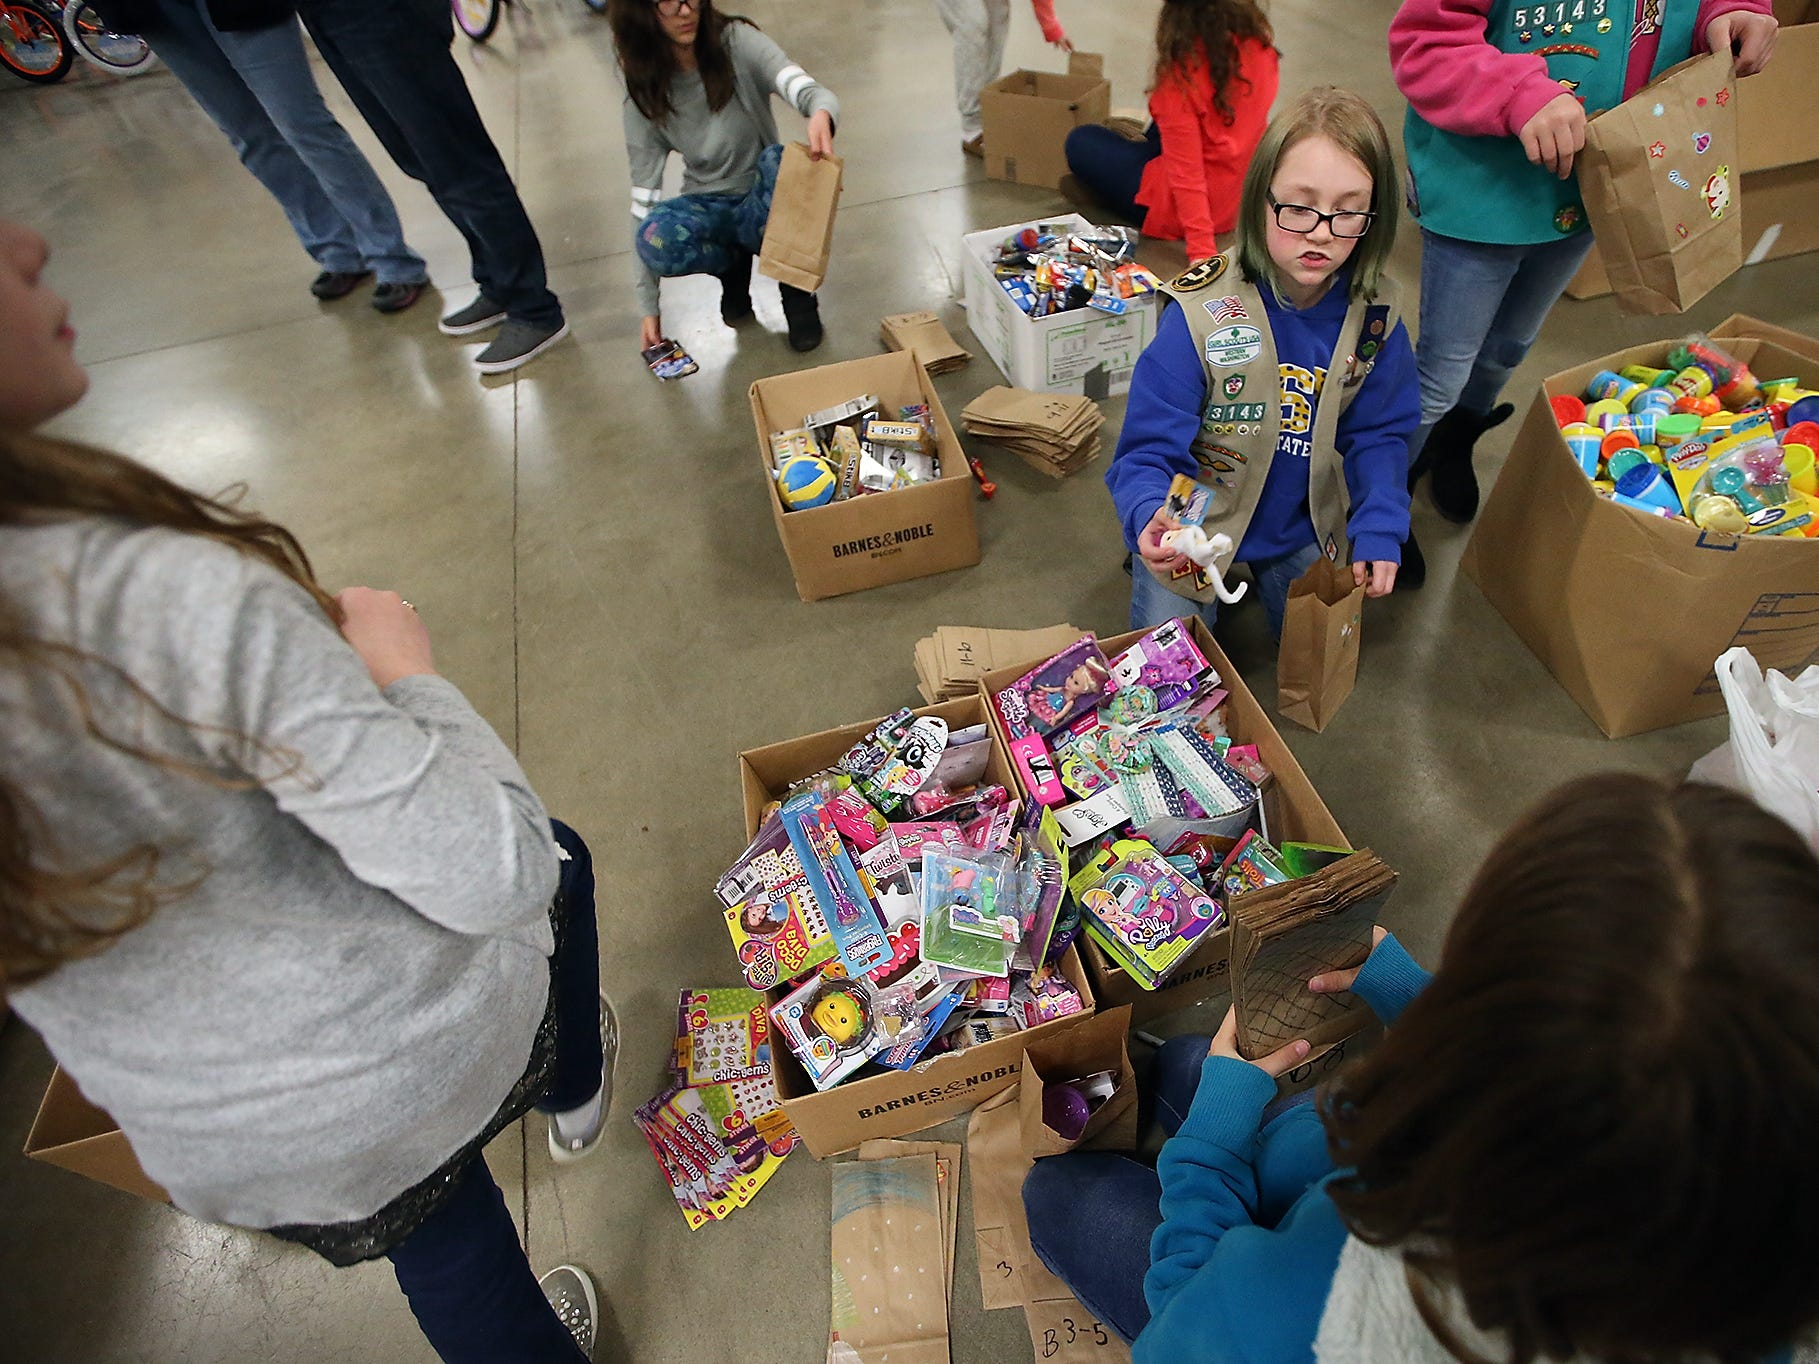 Girl Scout Rebecca Bolton, 12, and fellow young volunteers pack stocking stuffer bags to be given out during the upcoming Toys For Tots event in President's Hall at the Kitsap County Fairgrounds on Wednesday, December 12, 2018.